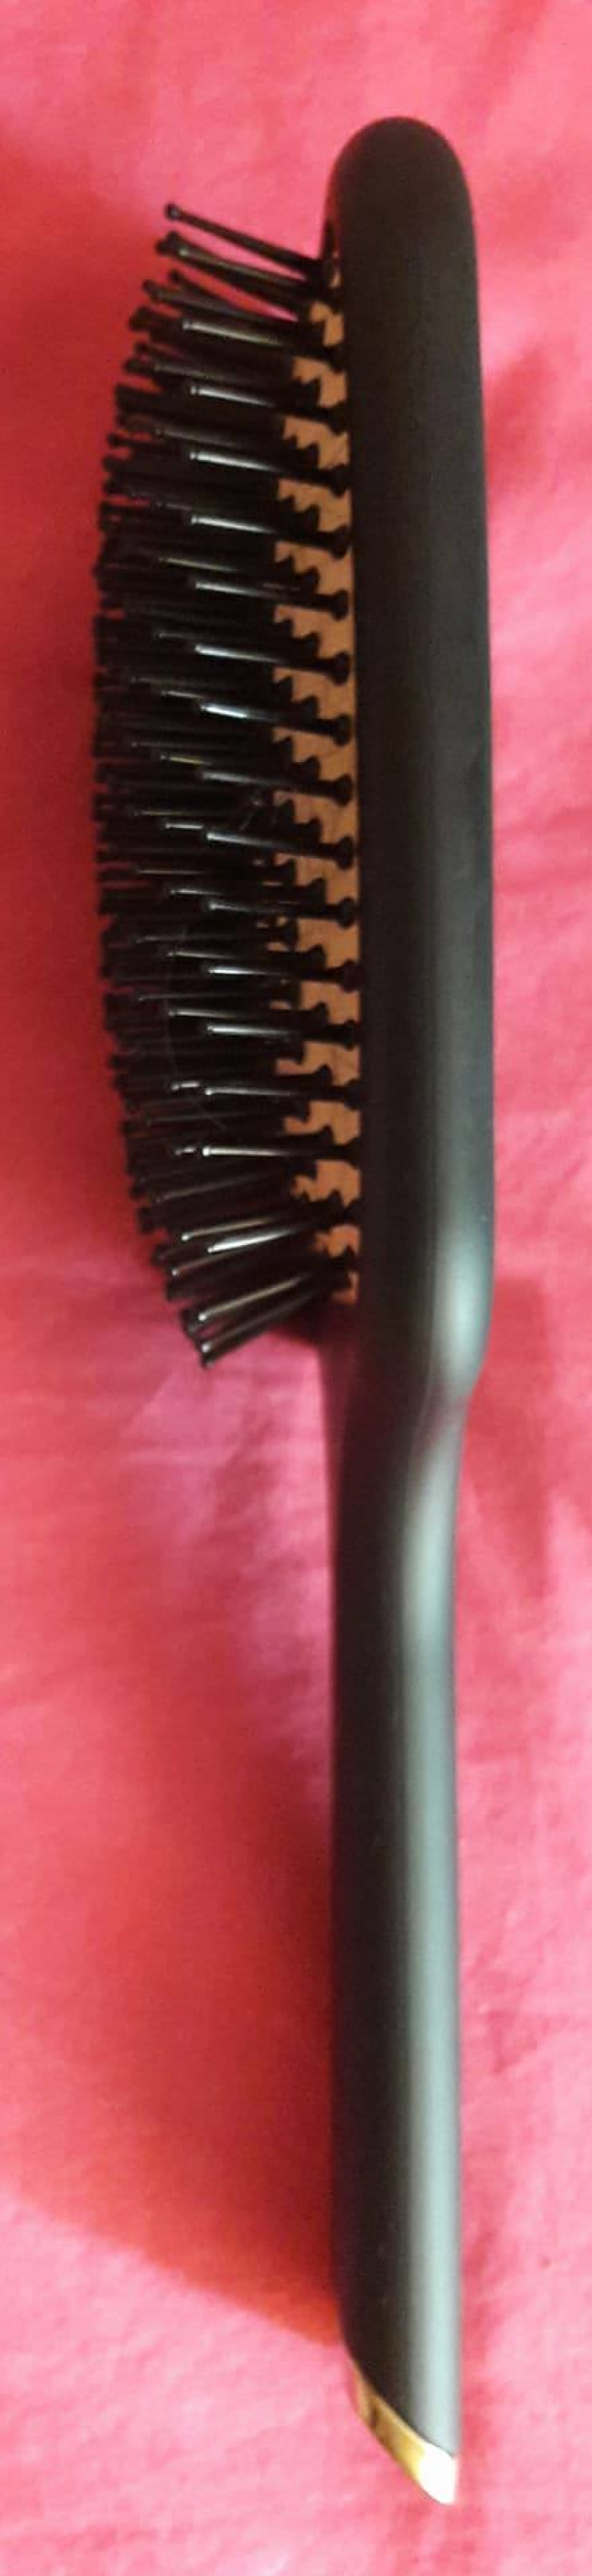 Swatch Brosse Plate GHD, Ghd